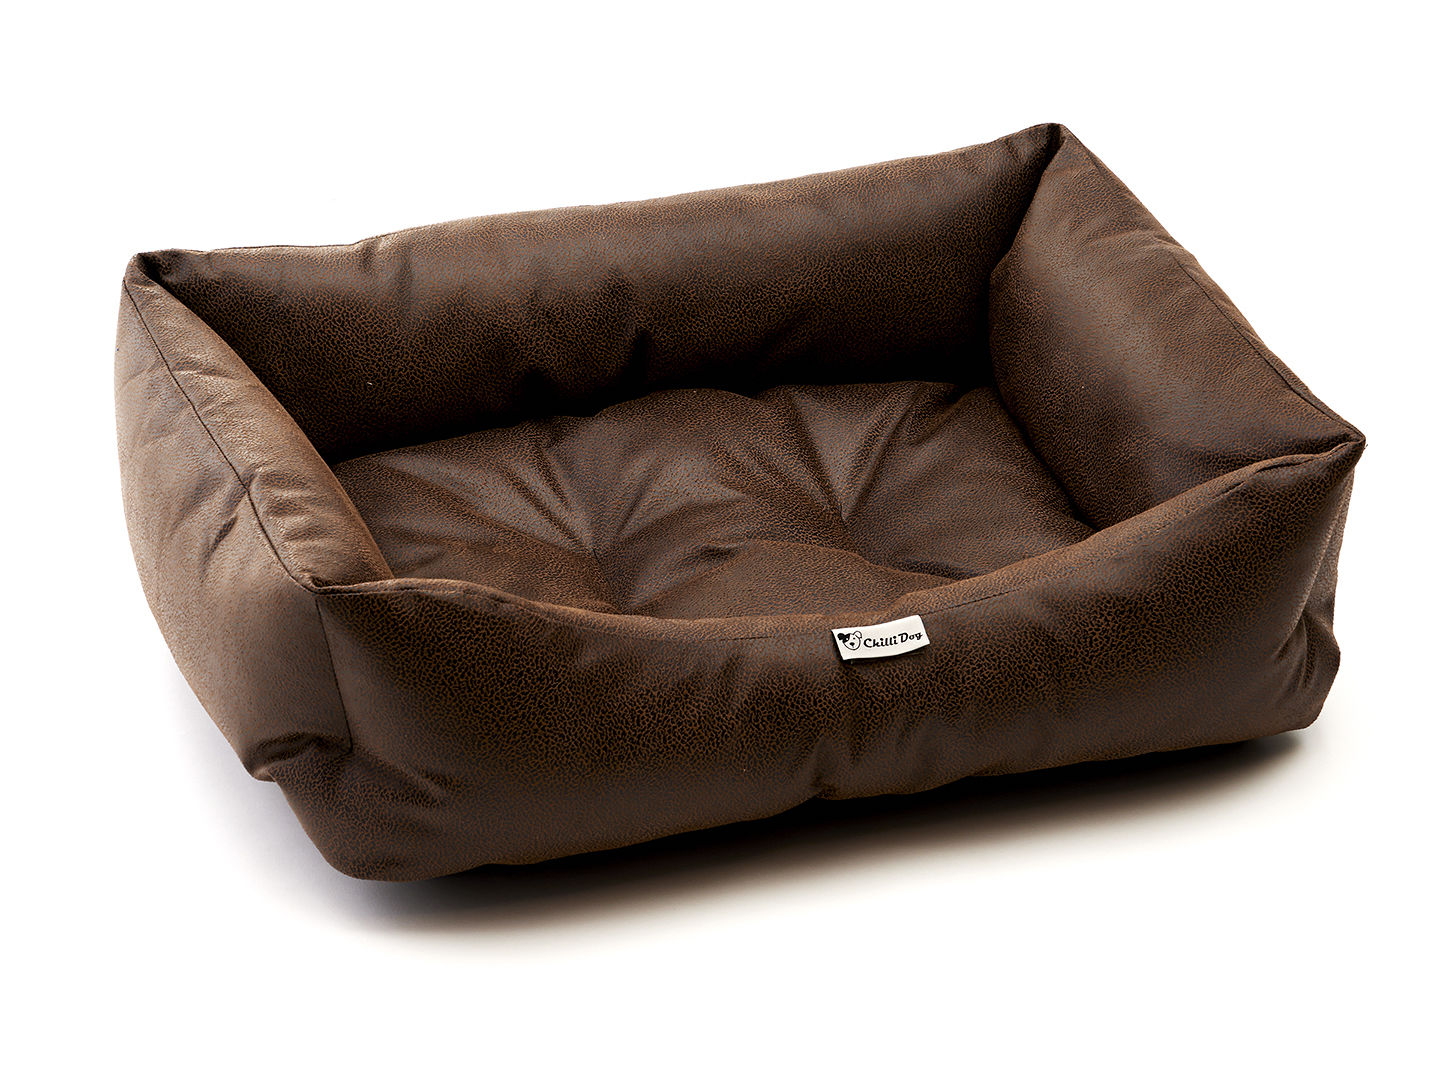 Chilli Dog Cotton Bed Antique Brown Faux Leather : 1490108849929blackbrownfauxleather from www.thebritishpetbedcompany.co.uk size 1440 x 1080 jpeg 1111kB